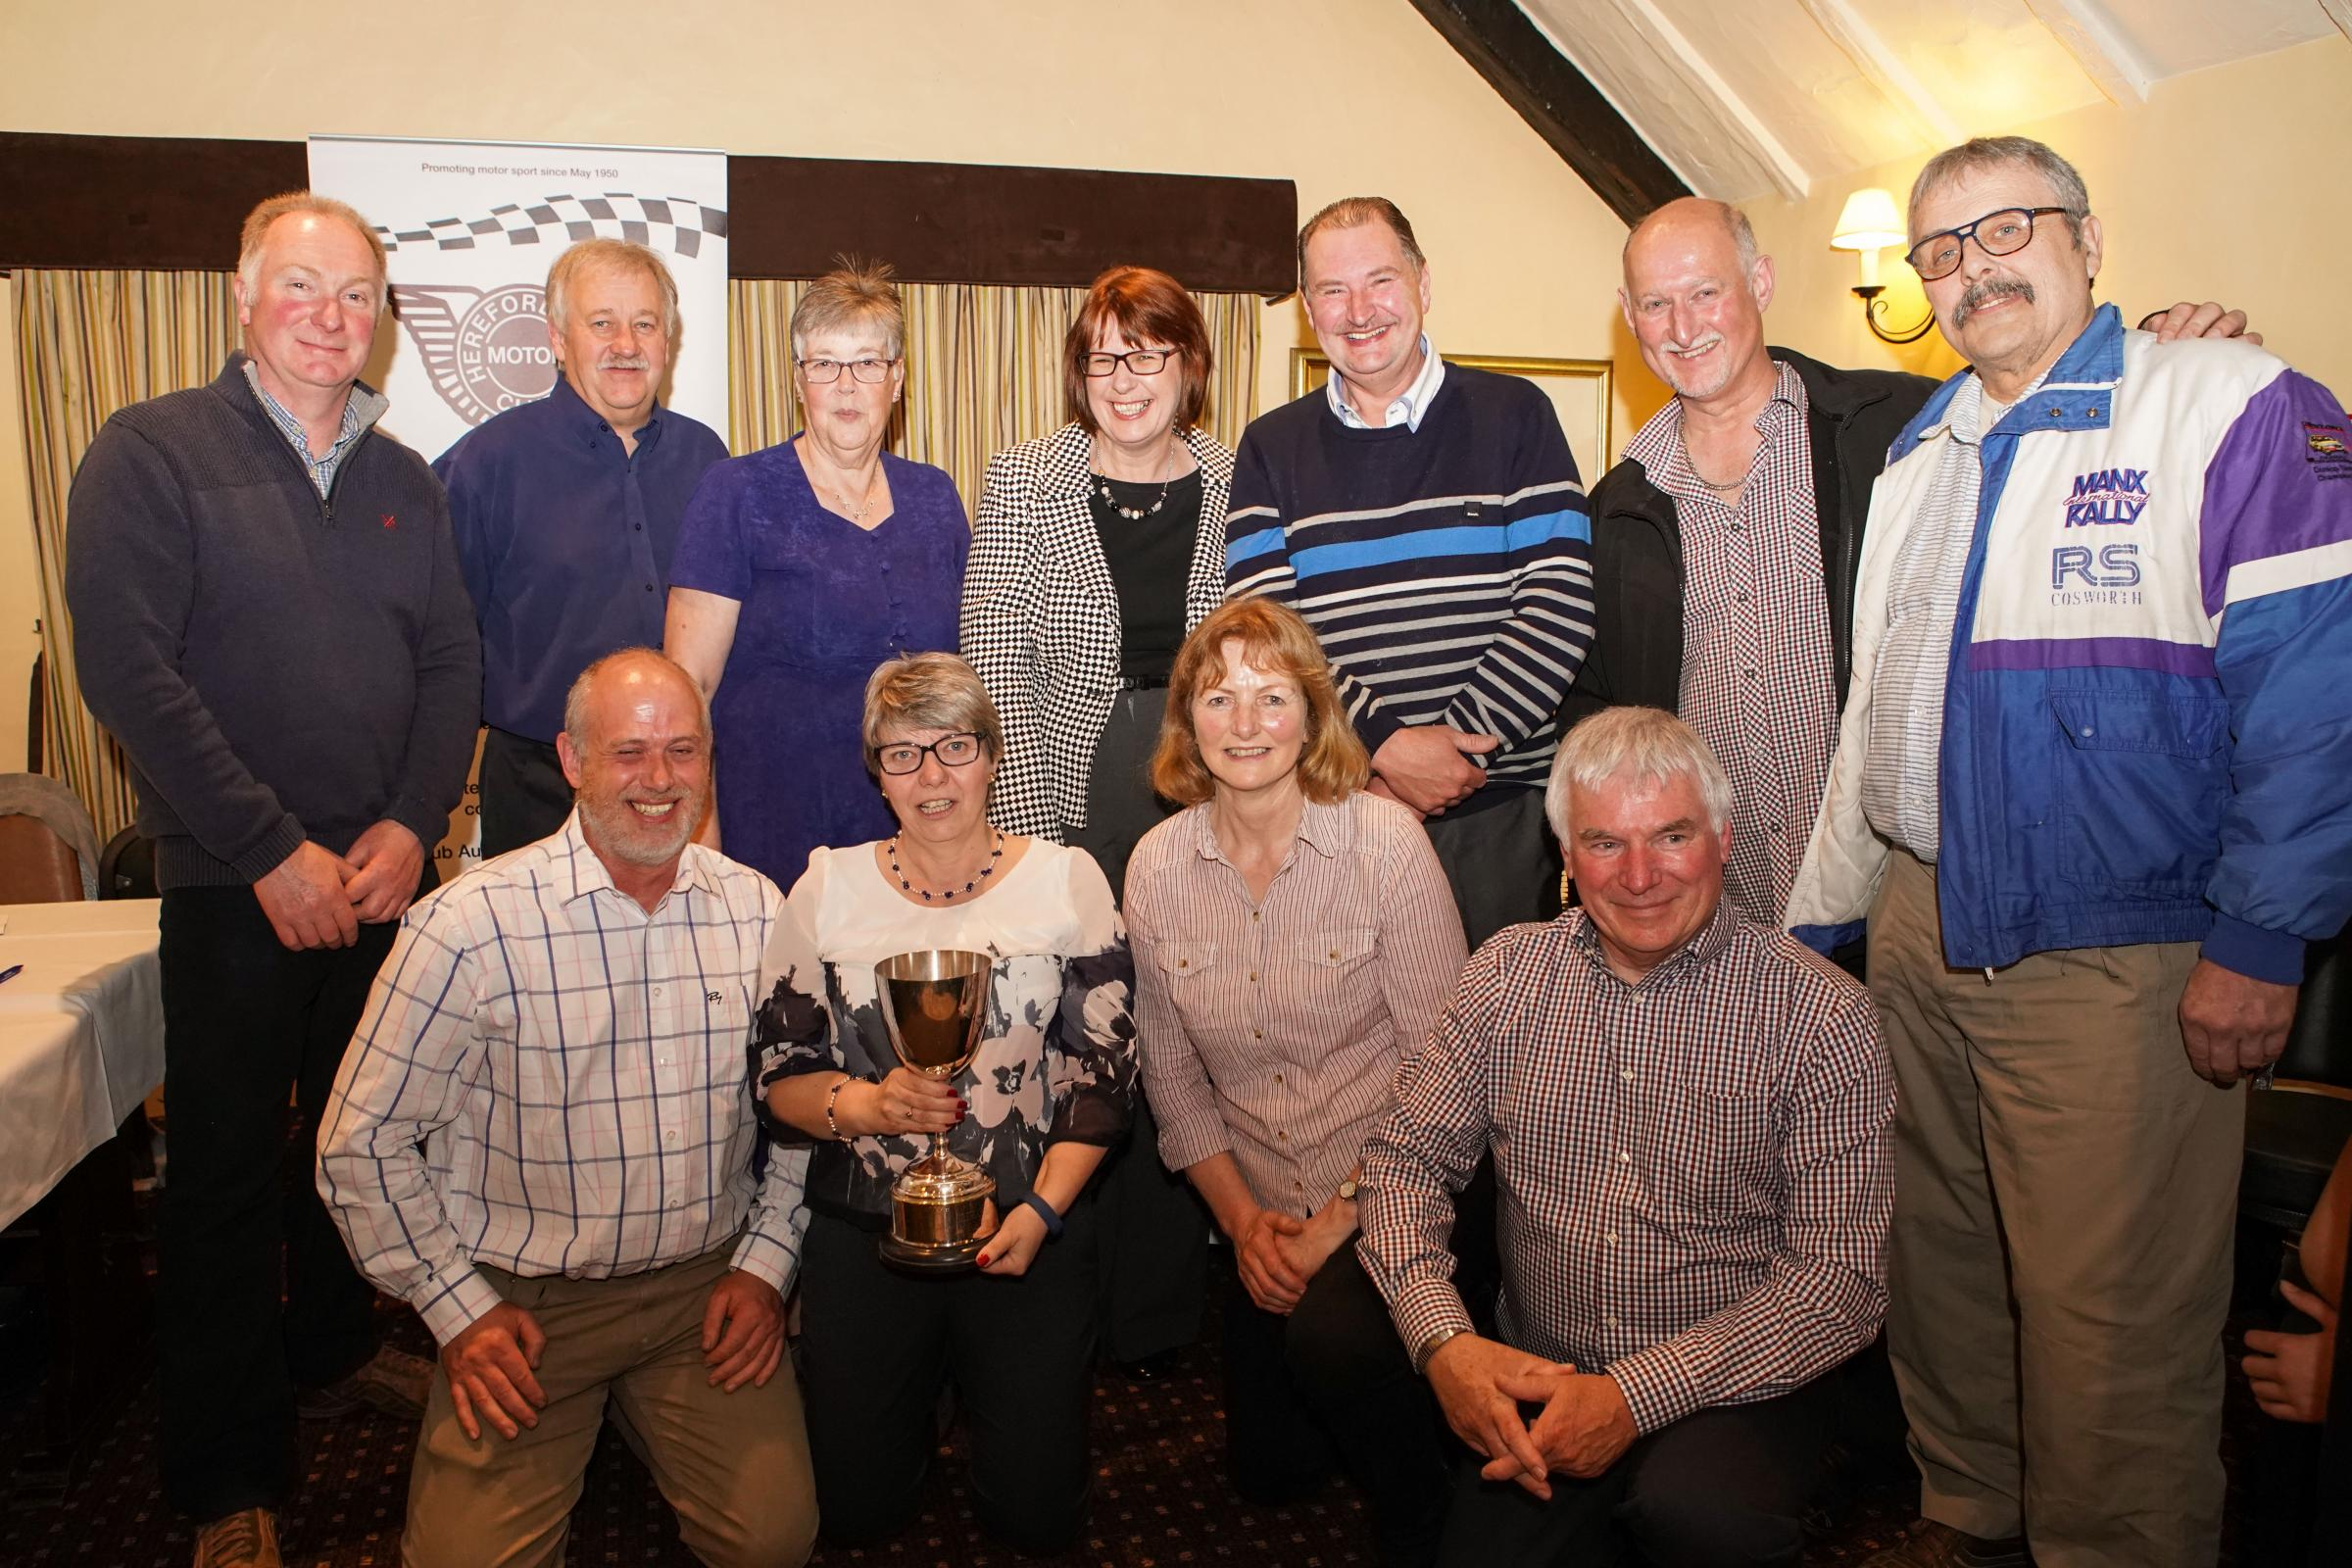 Herefordshire Motor Club award winners. Picture: Nigel Mee